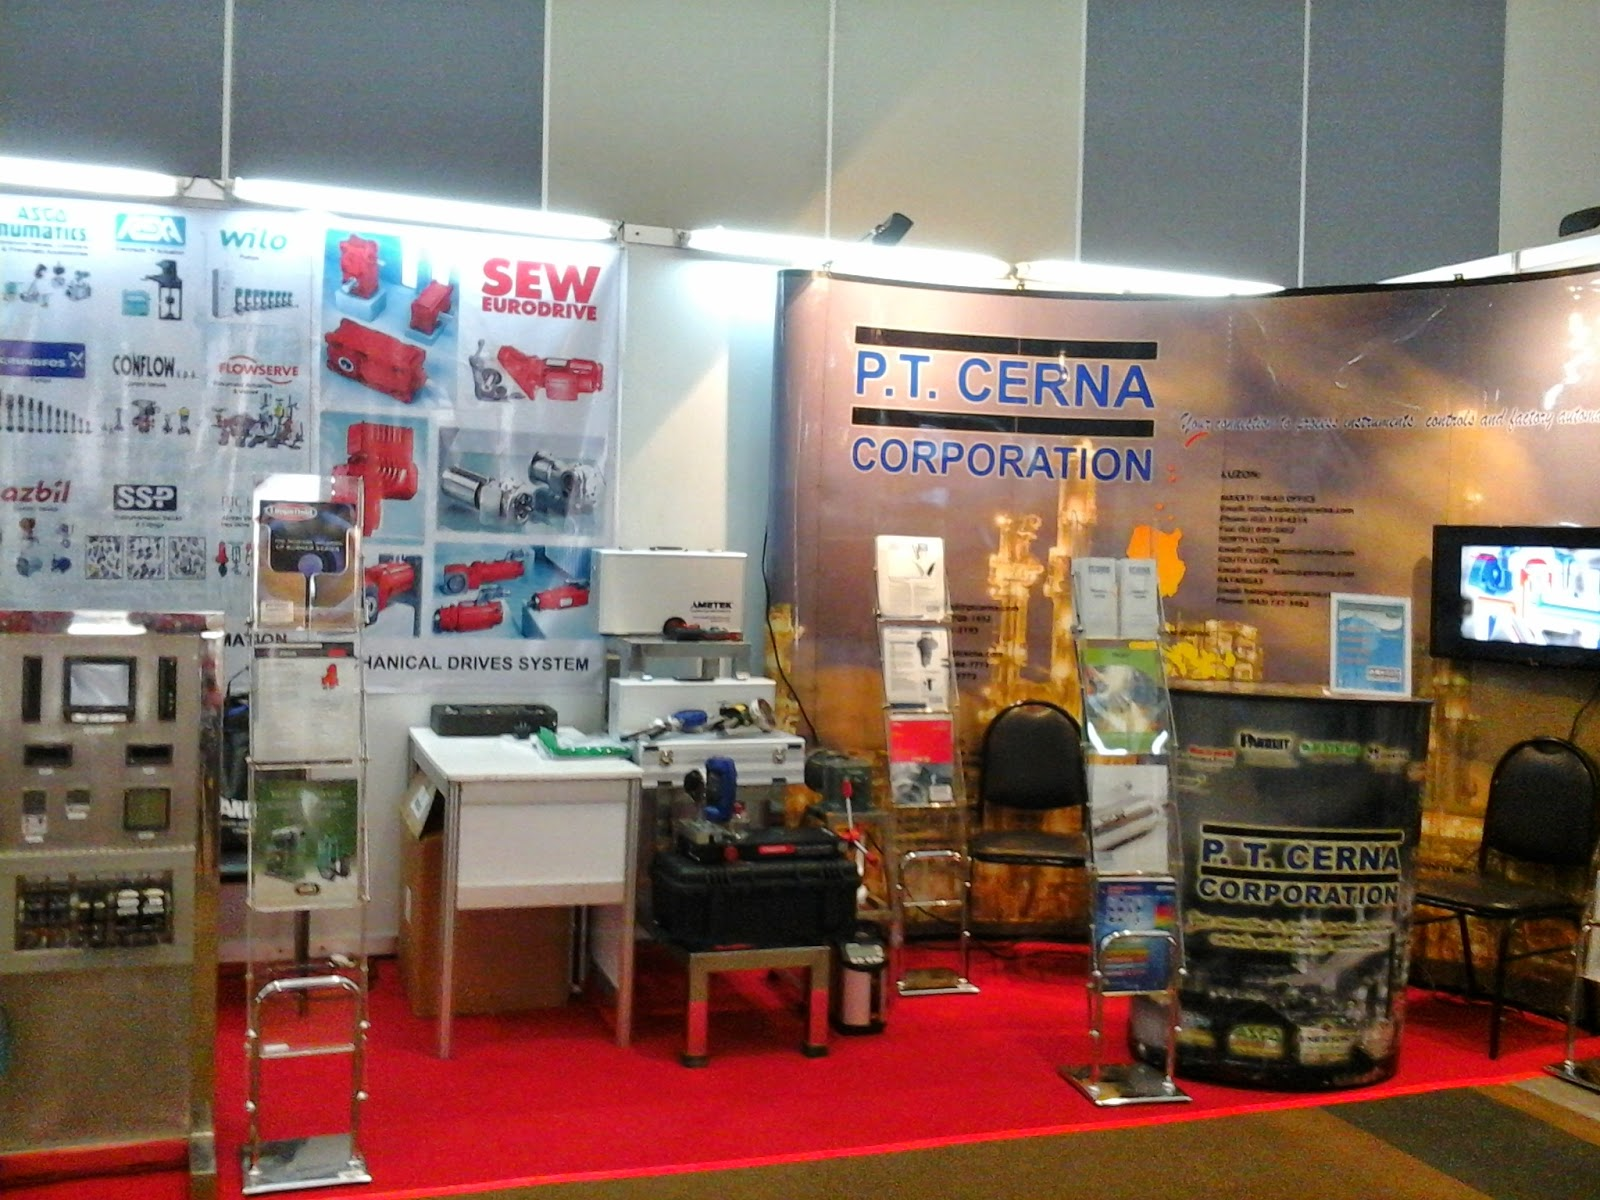 P.T. Cerna Corporation Exhibit Stand